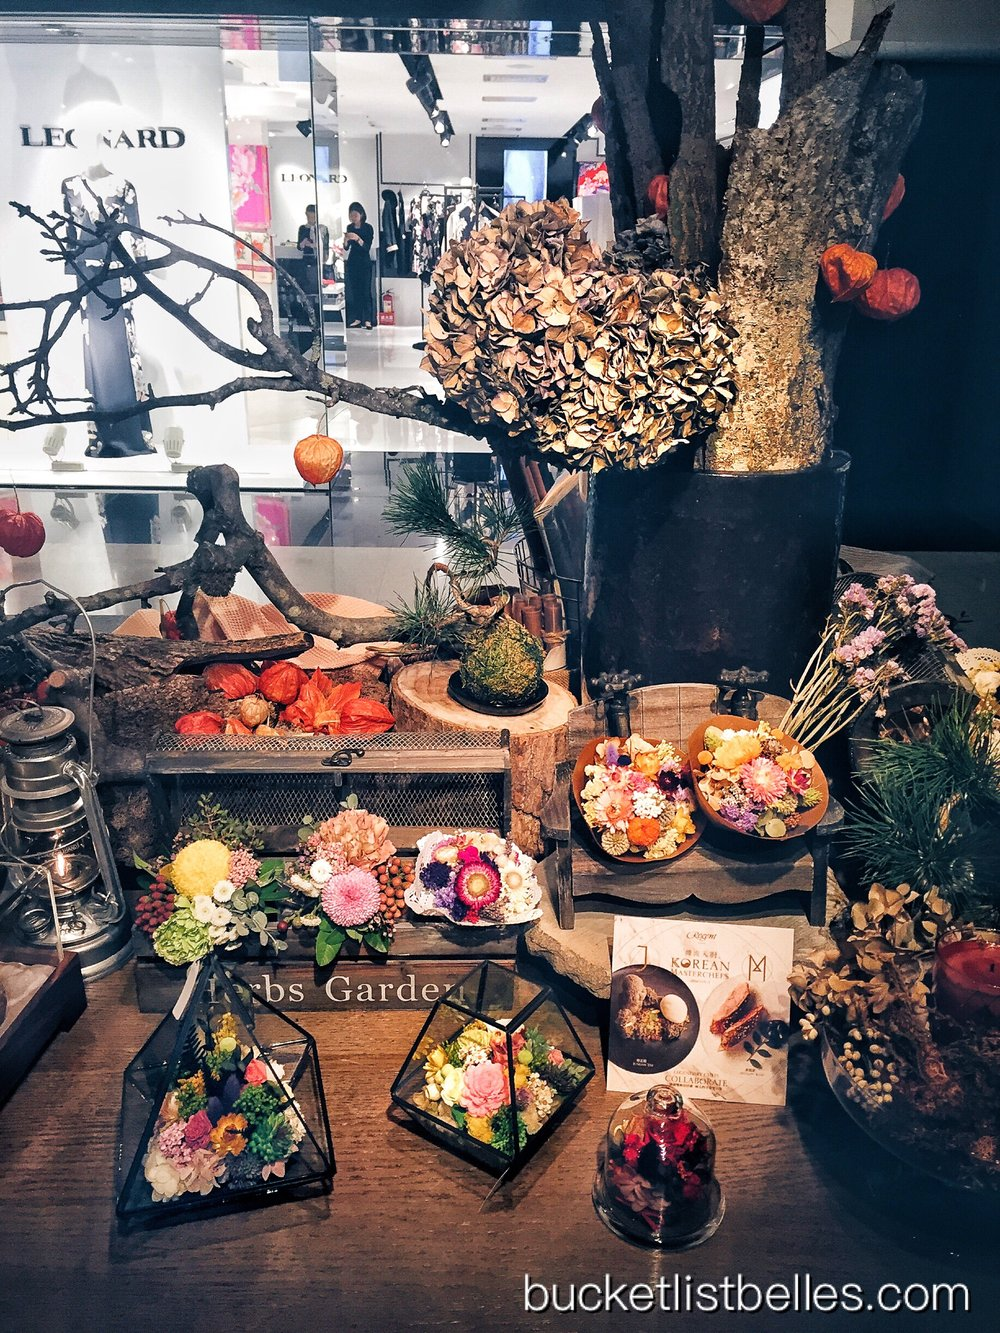 The Secret Garden offers floral arrangements curated by in-house Regent floral team for purchase